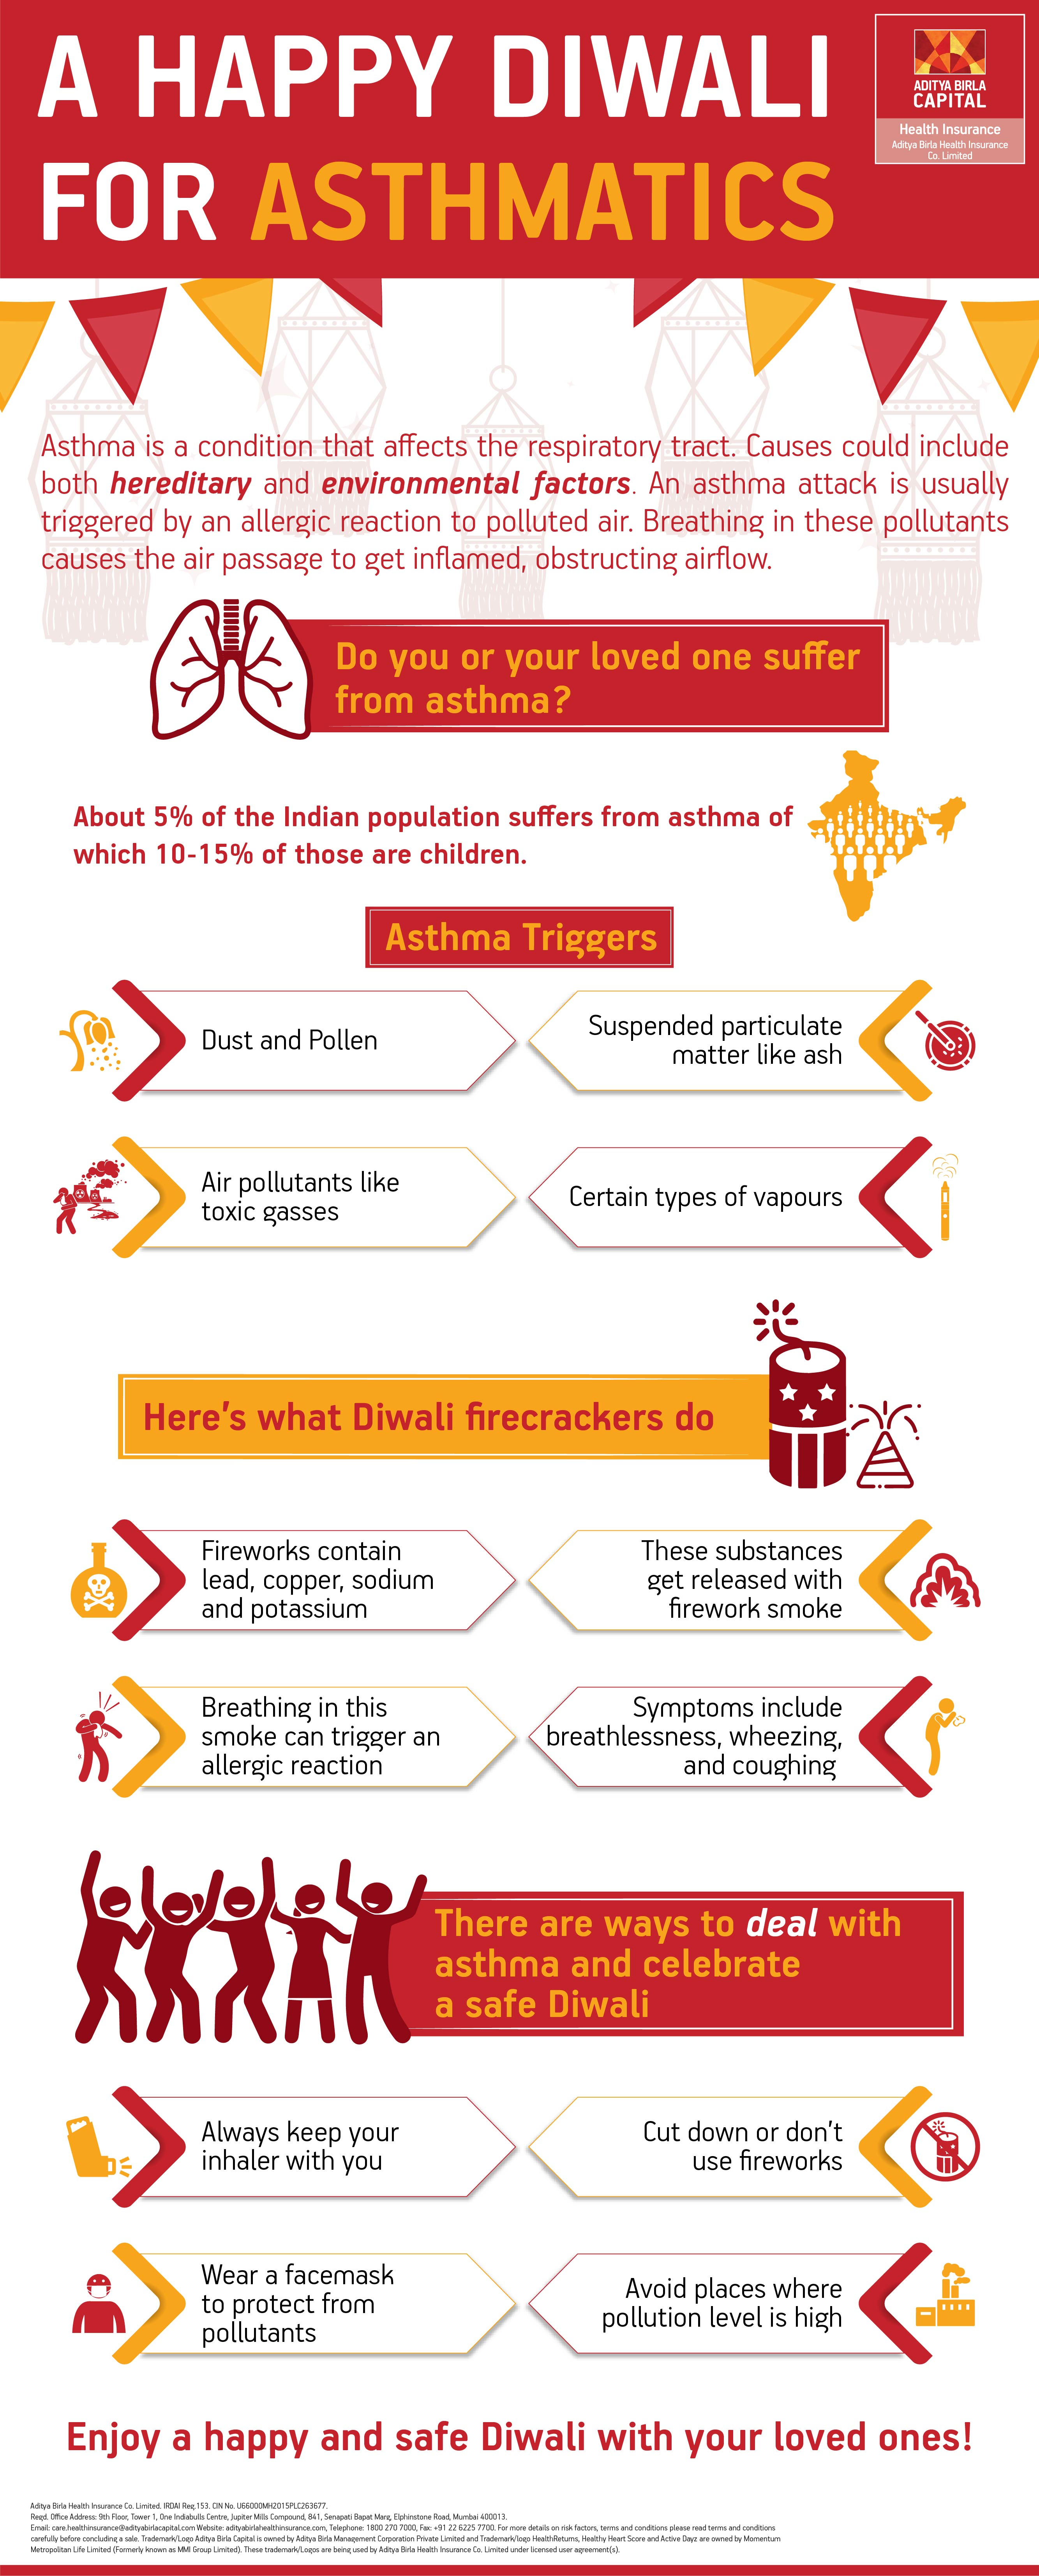 Tips For Asthma Patients During Diwali Infographic - Activ Together